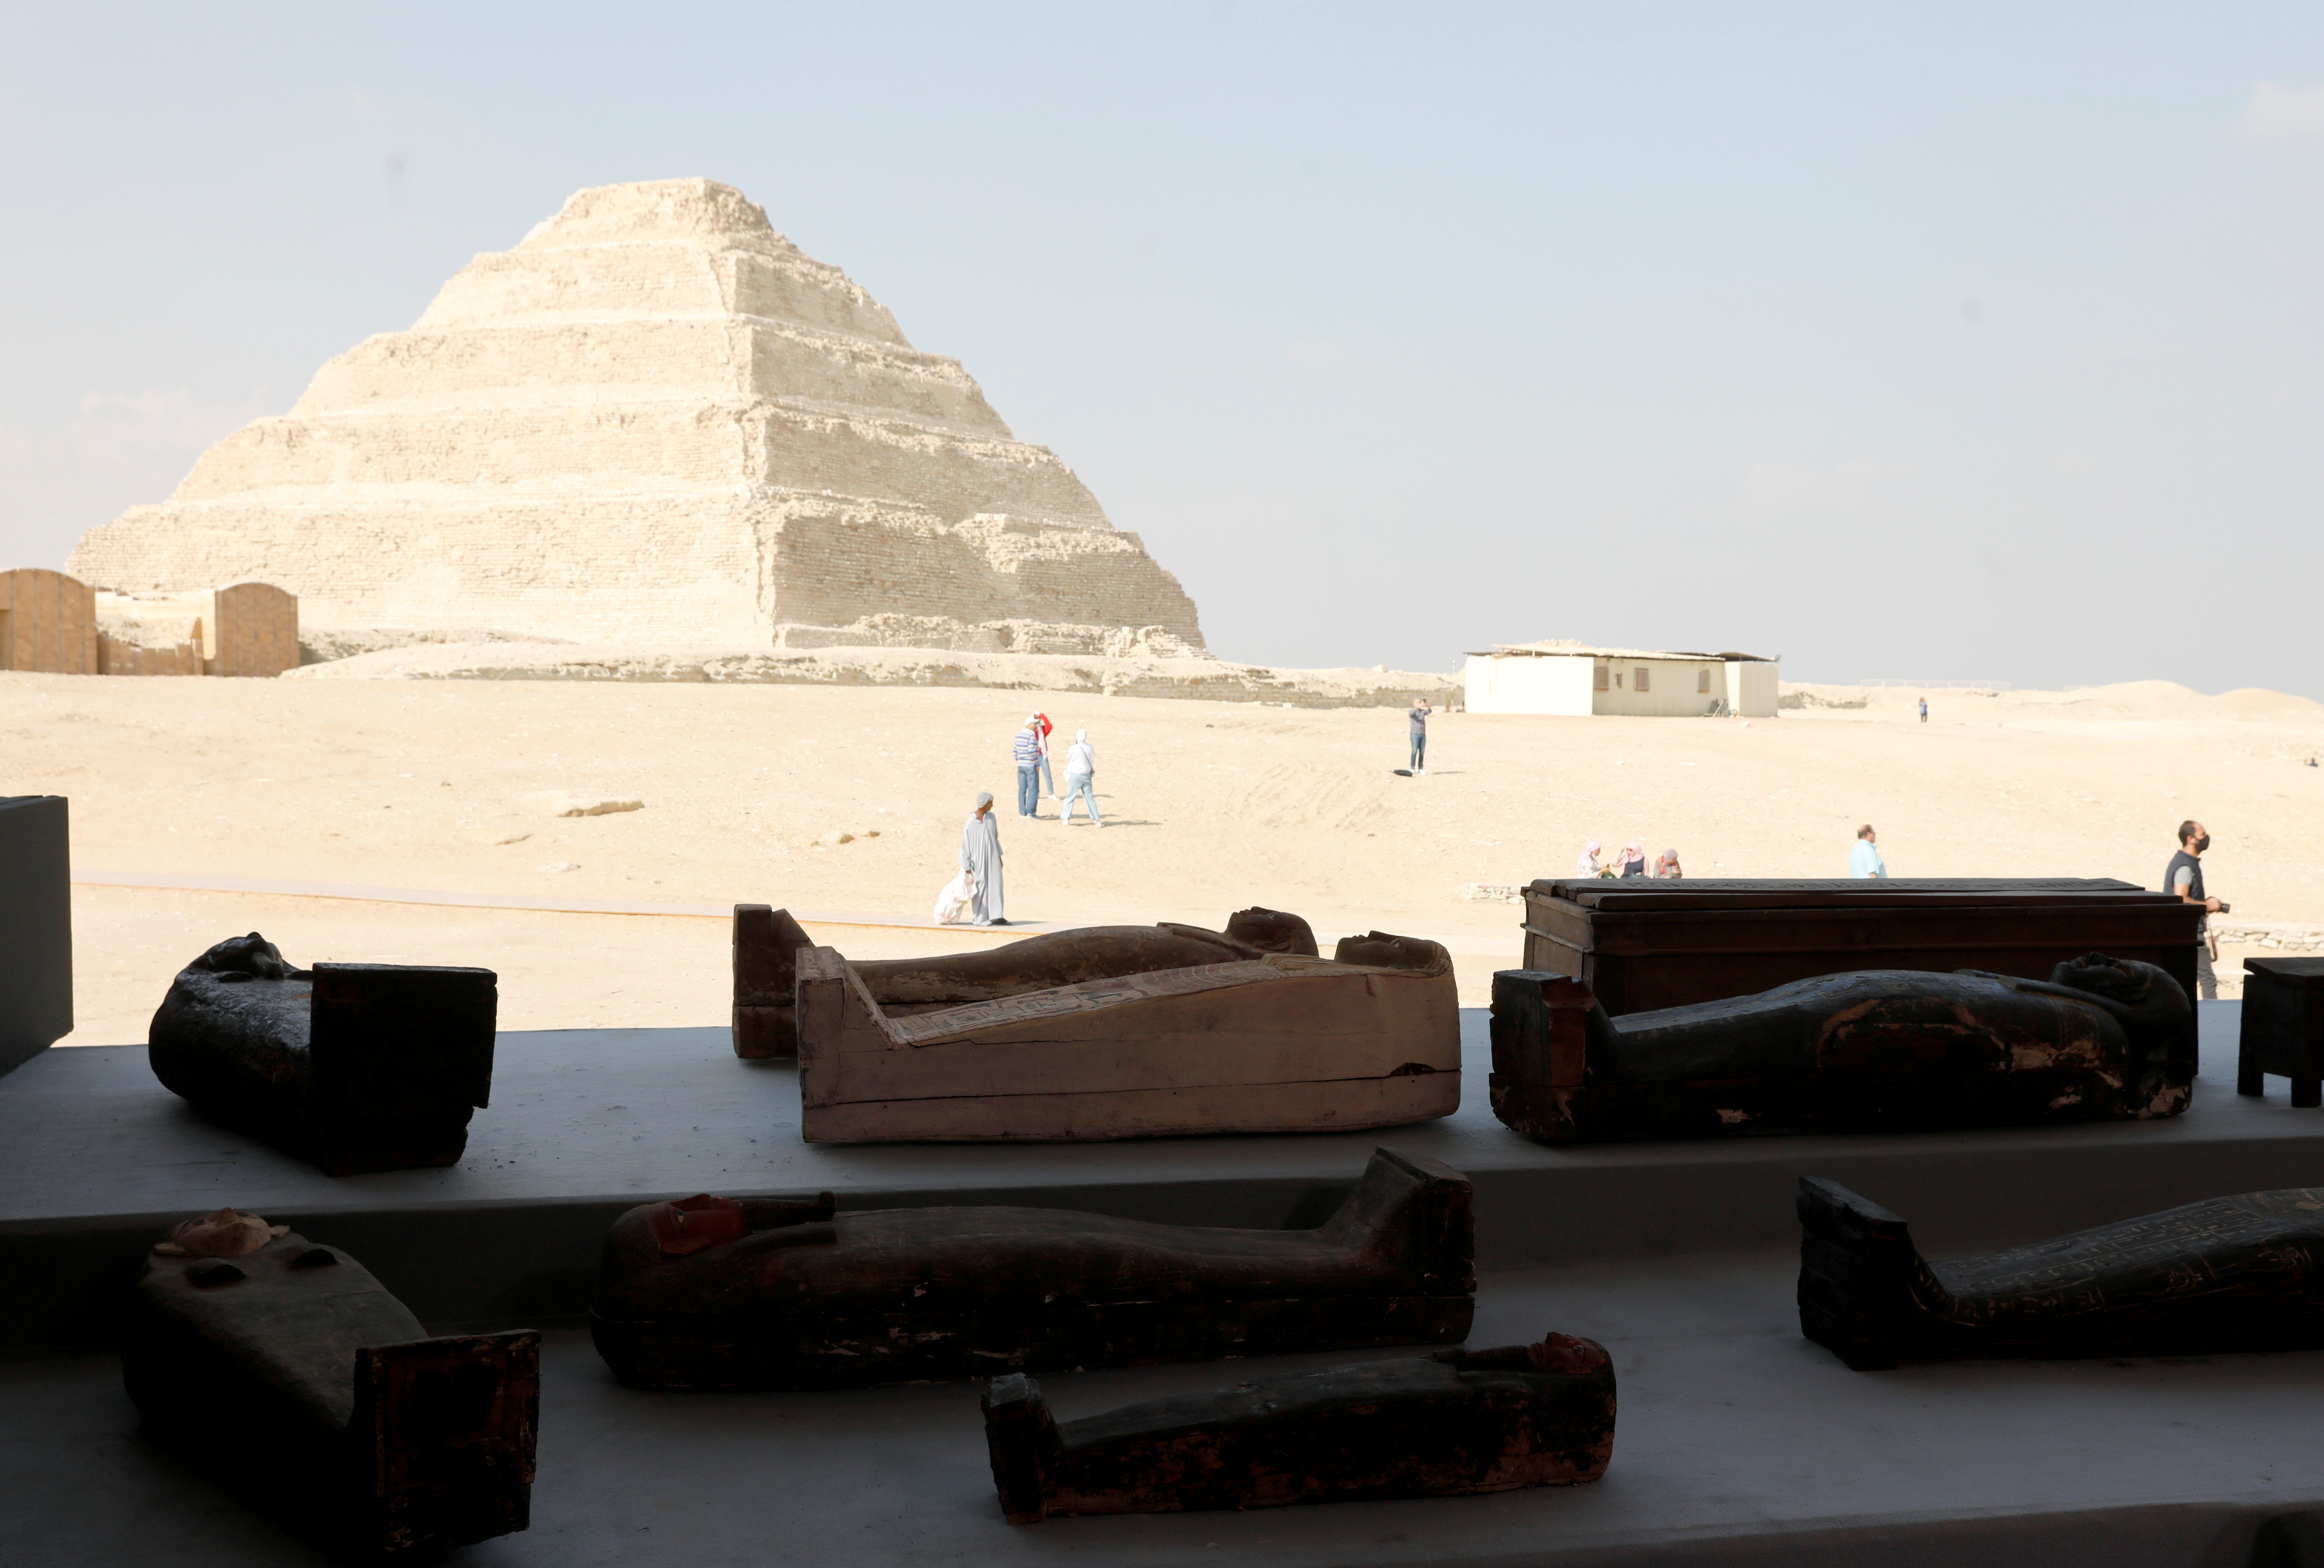 Sarcophaguses that are around 2500 years old, from the newly discovered burial site near Egypt's Saqqara necropolis, are seen during a presentation in Giza, Egypt November 14, 2020. REUTERS/Mohamed Abd El Ghany/File Photo